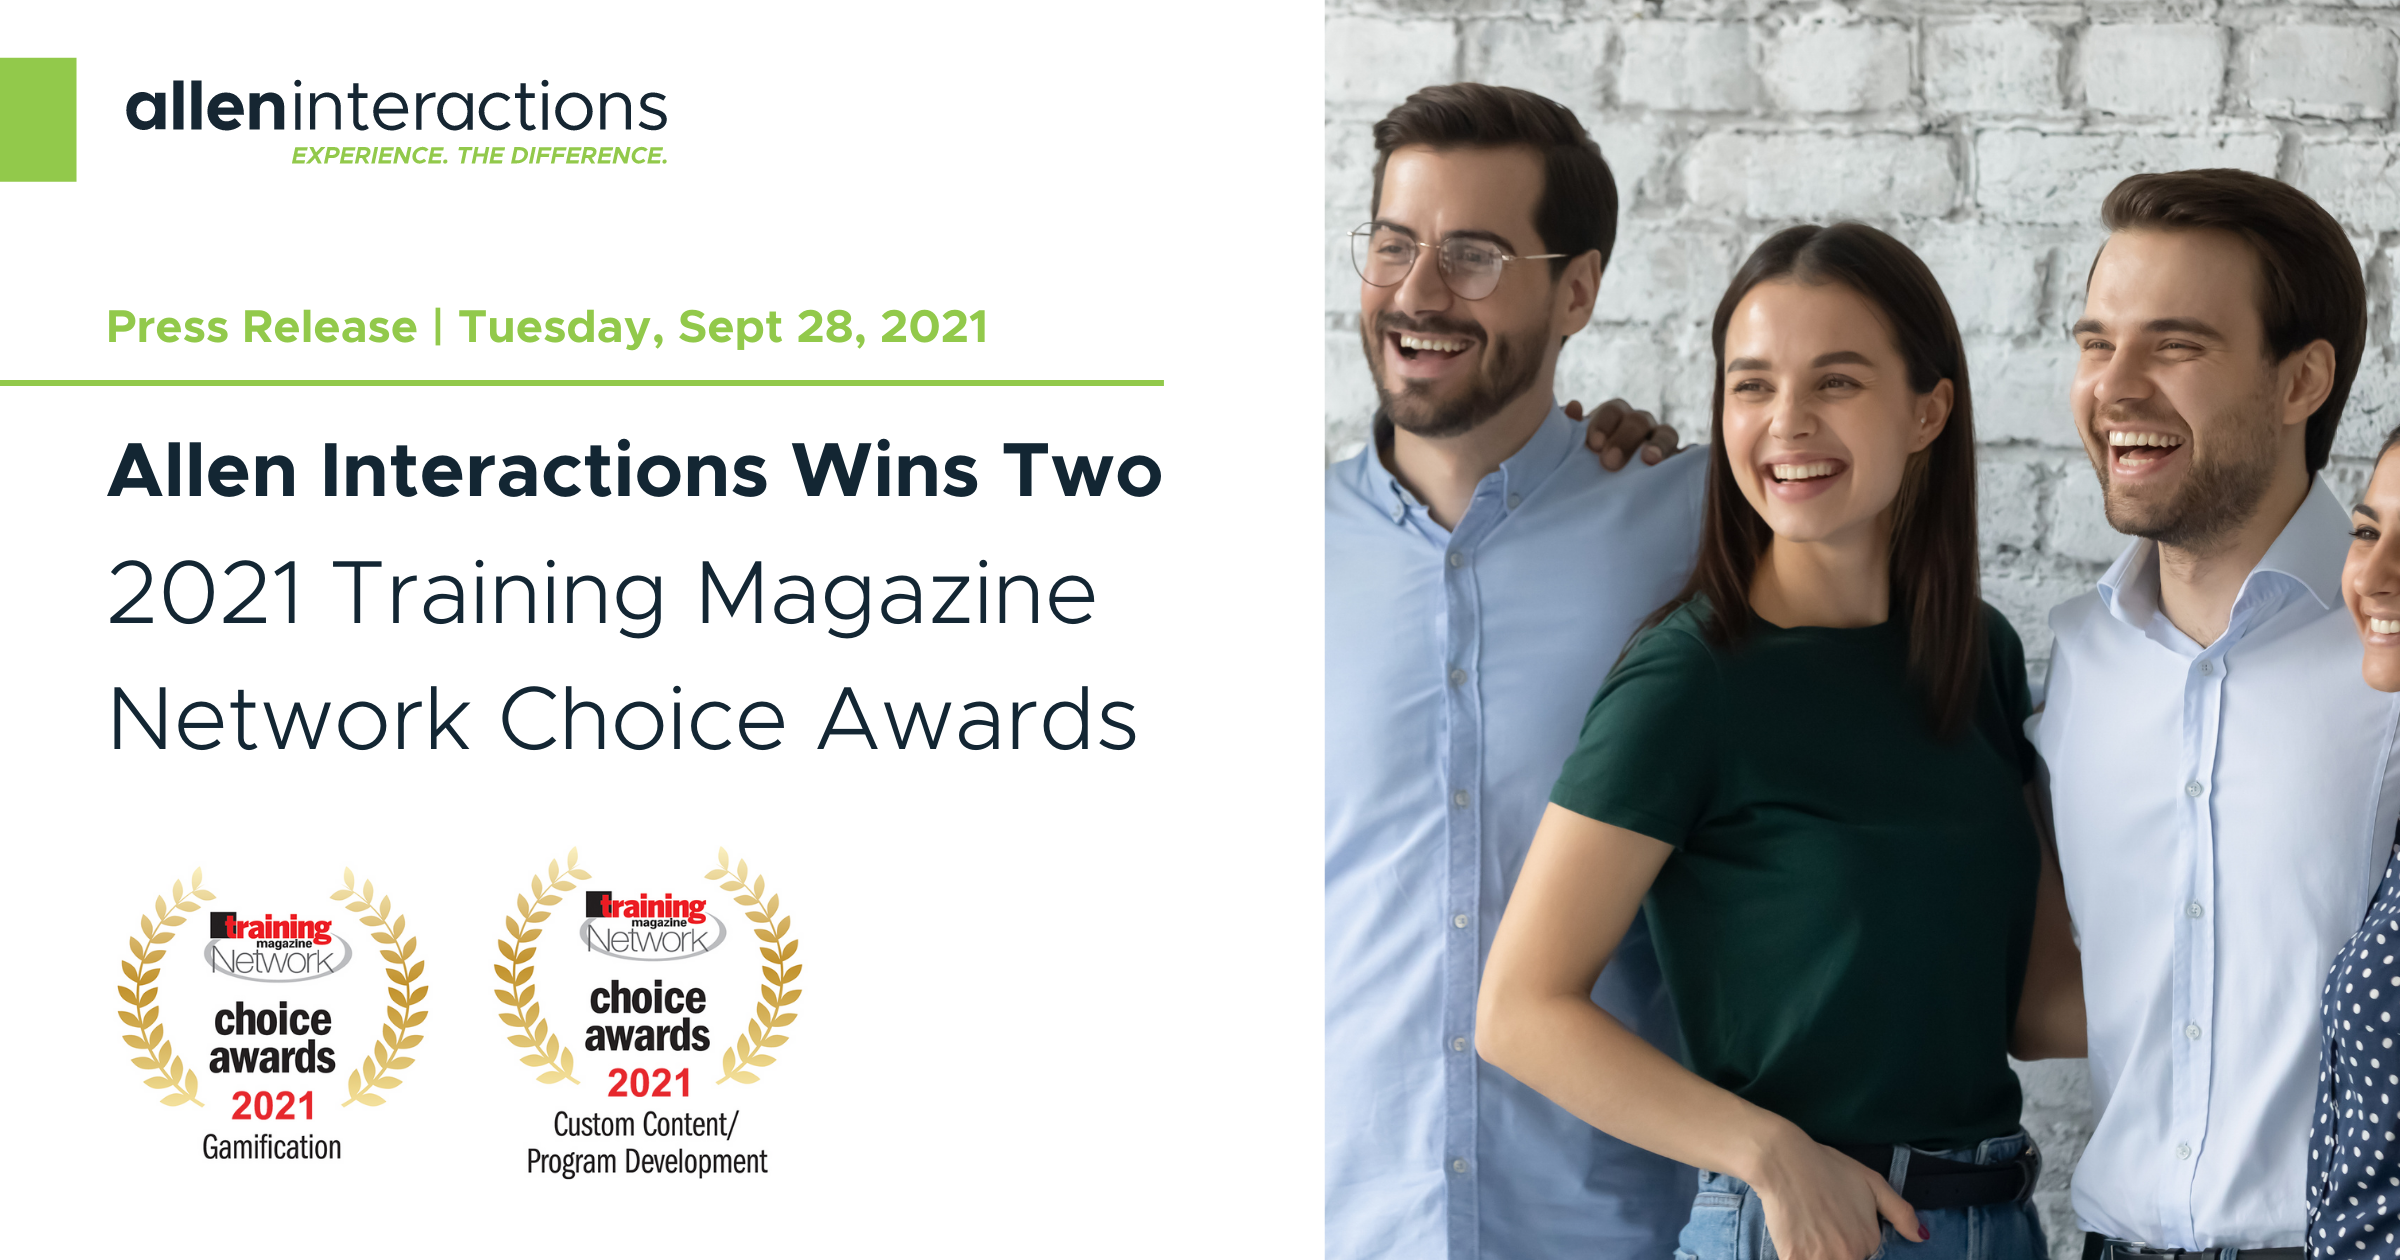 Allen Interactions Wins Two 2021 Training Magazine Network Choice Awards